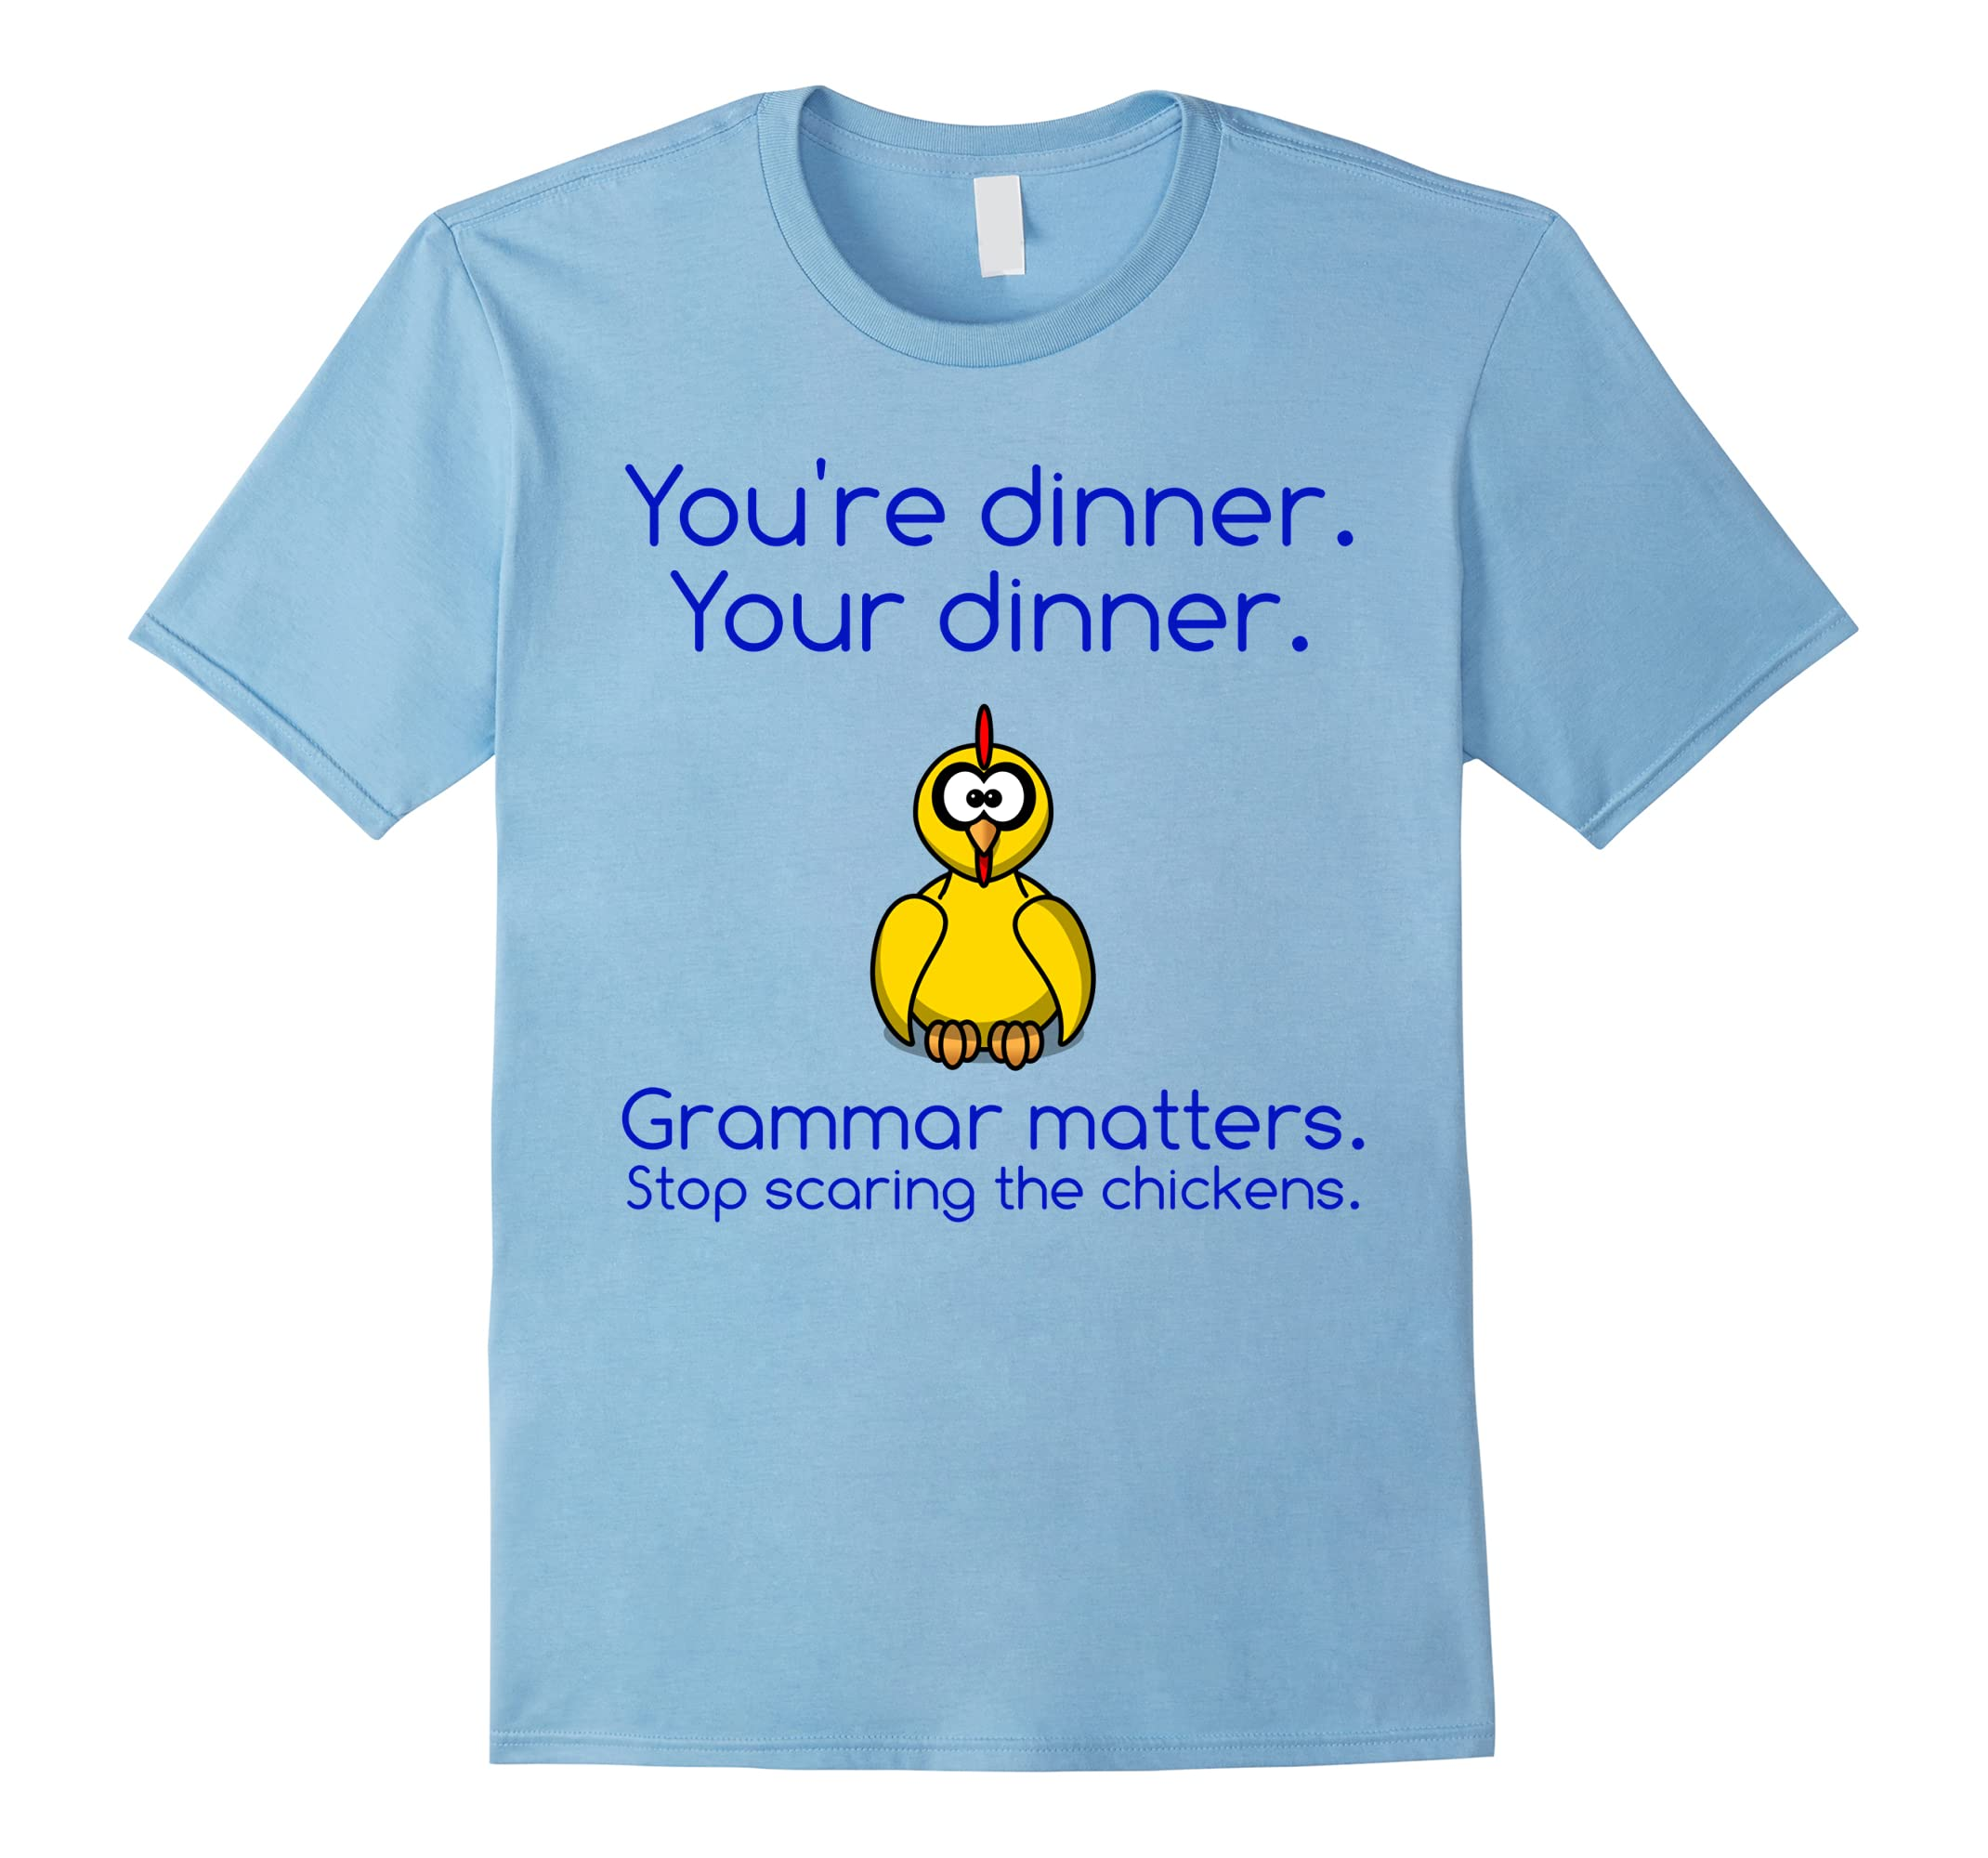 Cute Grammar T-Shirt - Stop Scaring The Chickens Shirts-ah my shirt one gift